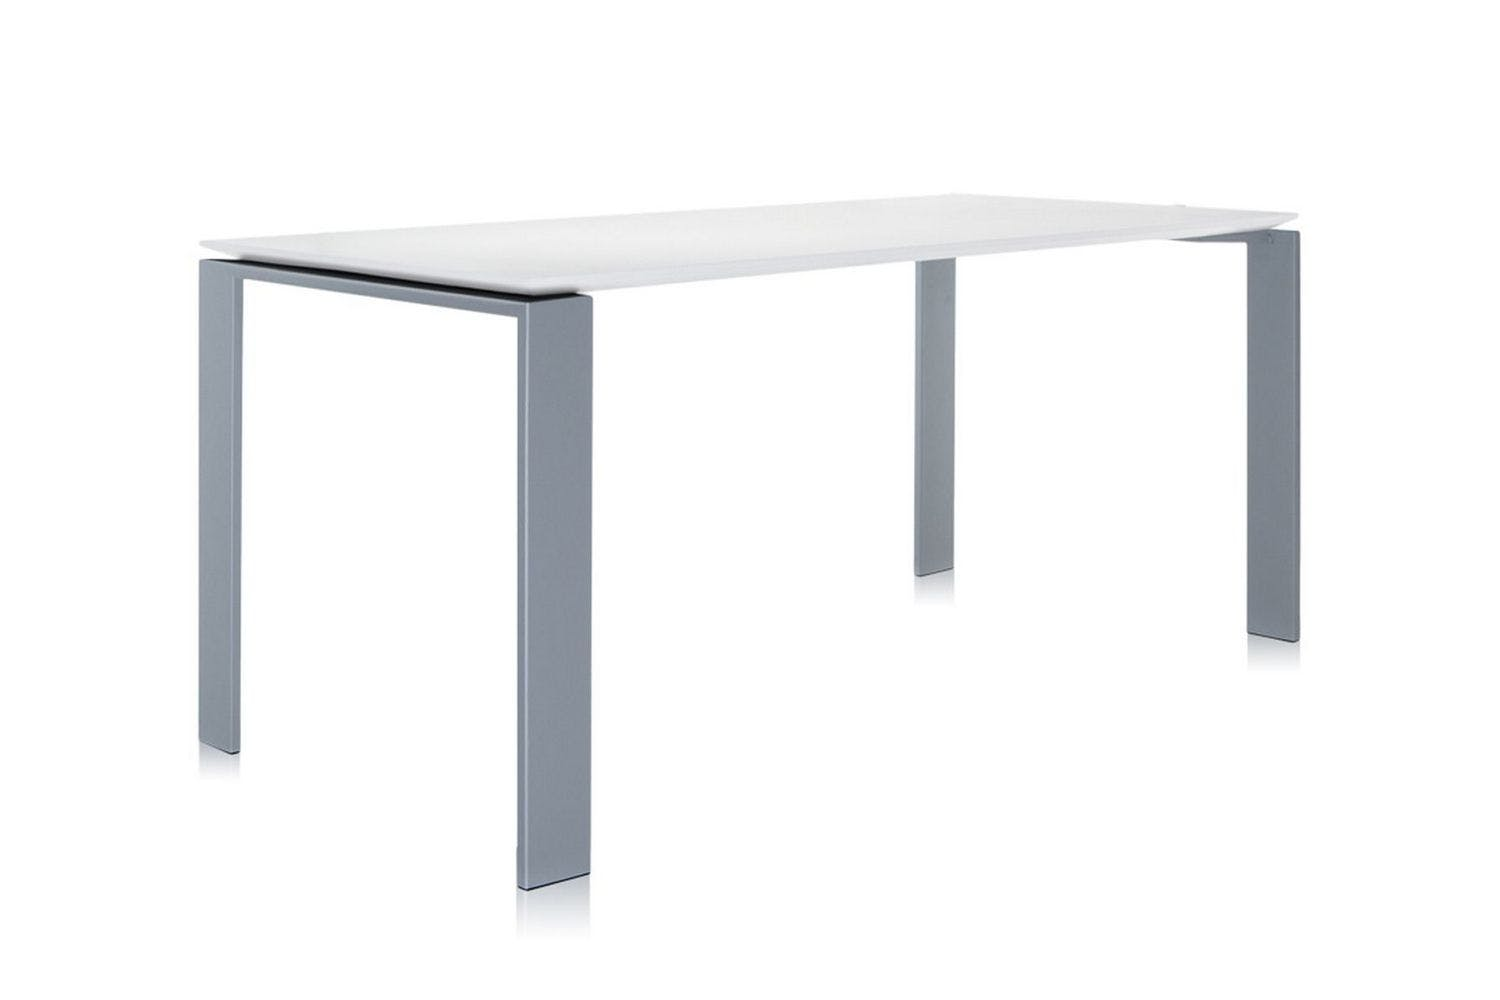 Four medium table by ferruccio laviani for kartell space for Table kartell